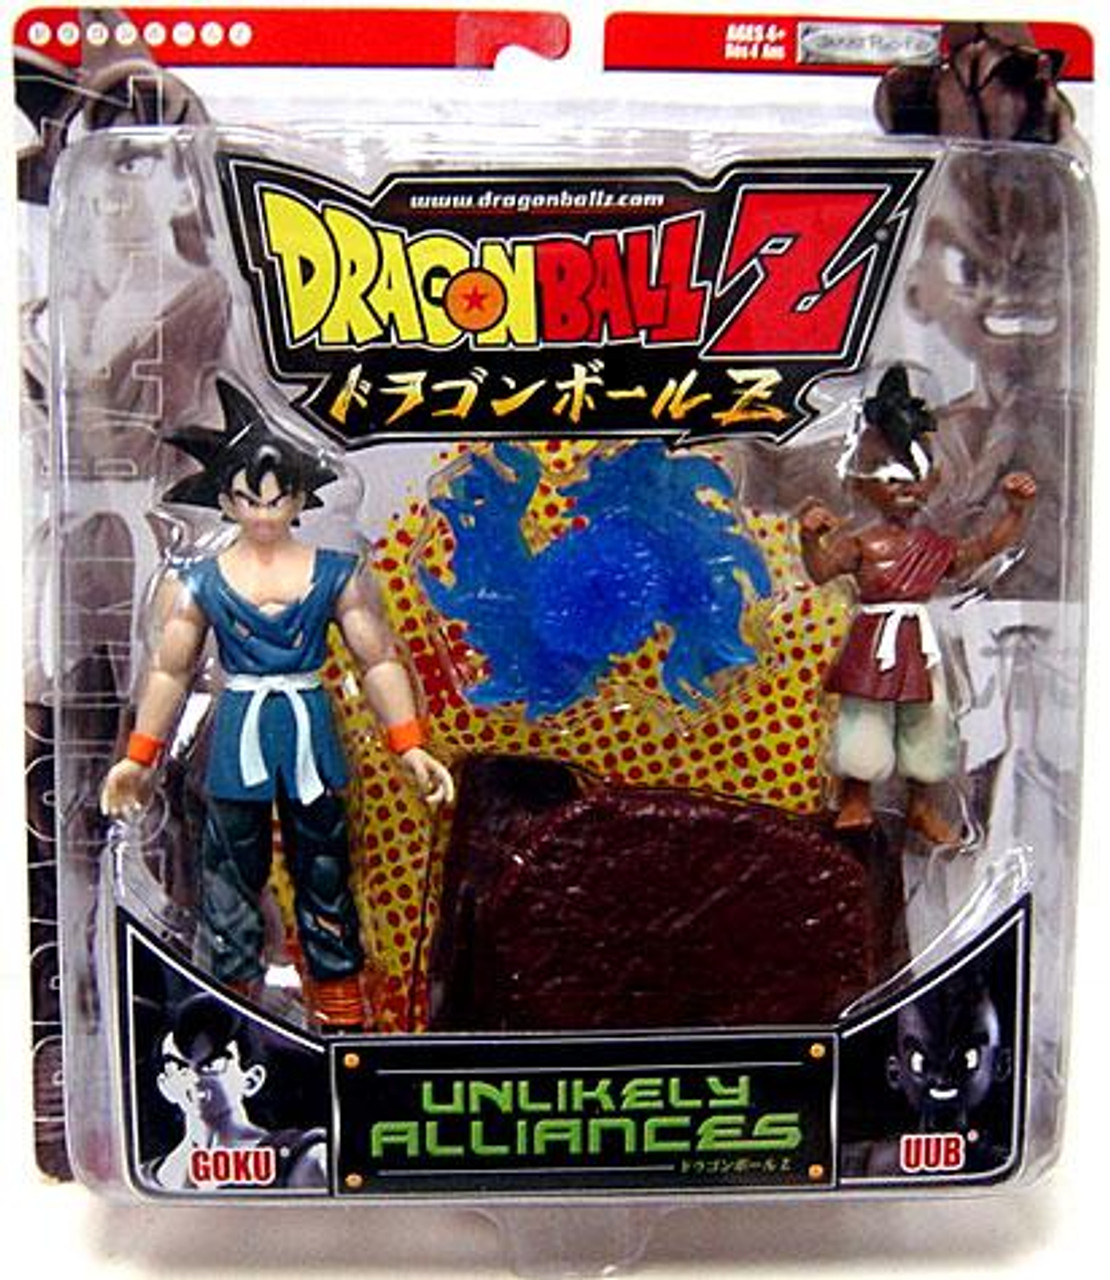 Dragon Ball Z Unlikely Alliances Goku & Uub Action Figure 2-Pack